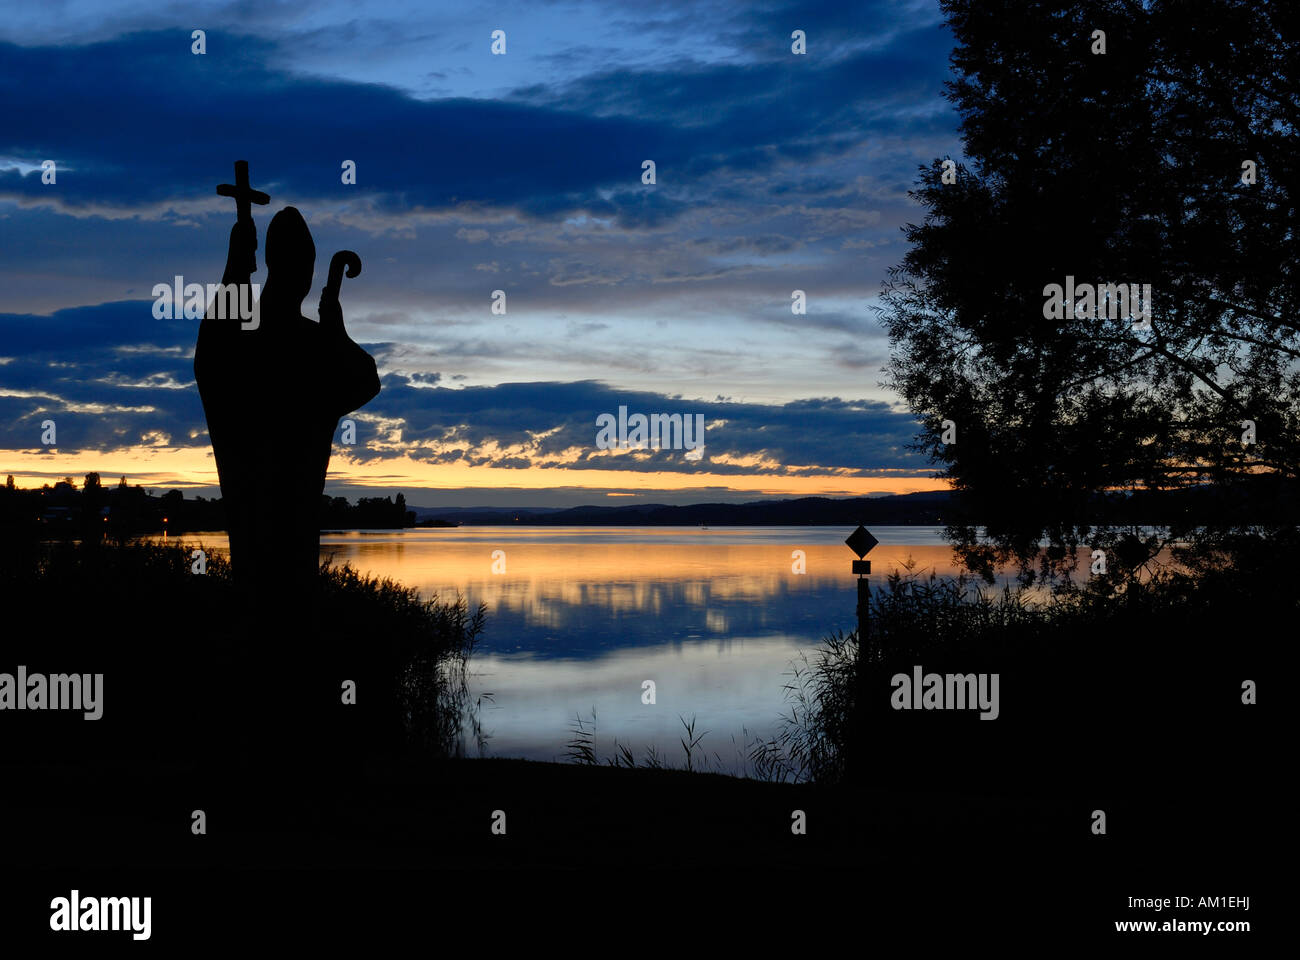 Isle of Reichenau - a silhouette of the statue from the st. pirmin in the dusk - Germany, Europe. - Stock Image